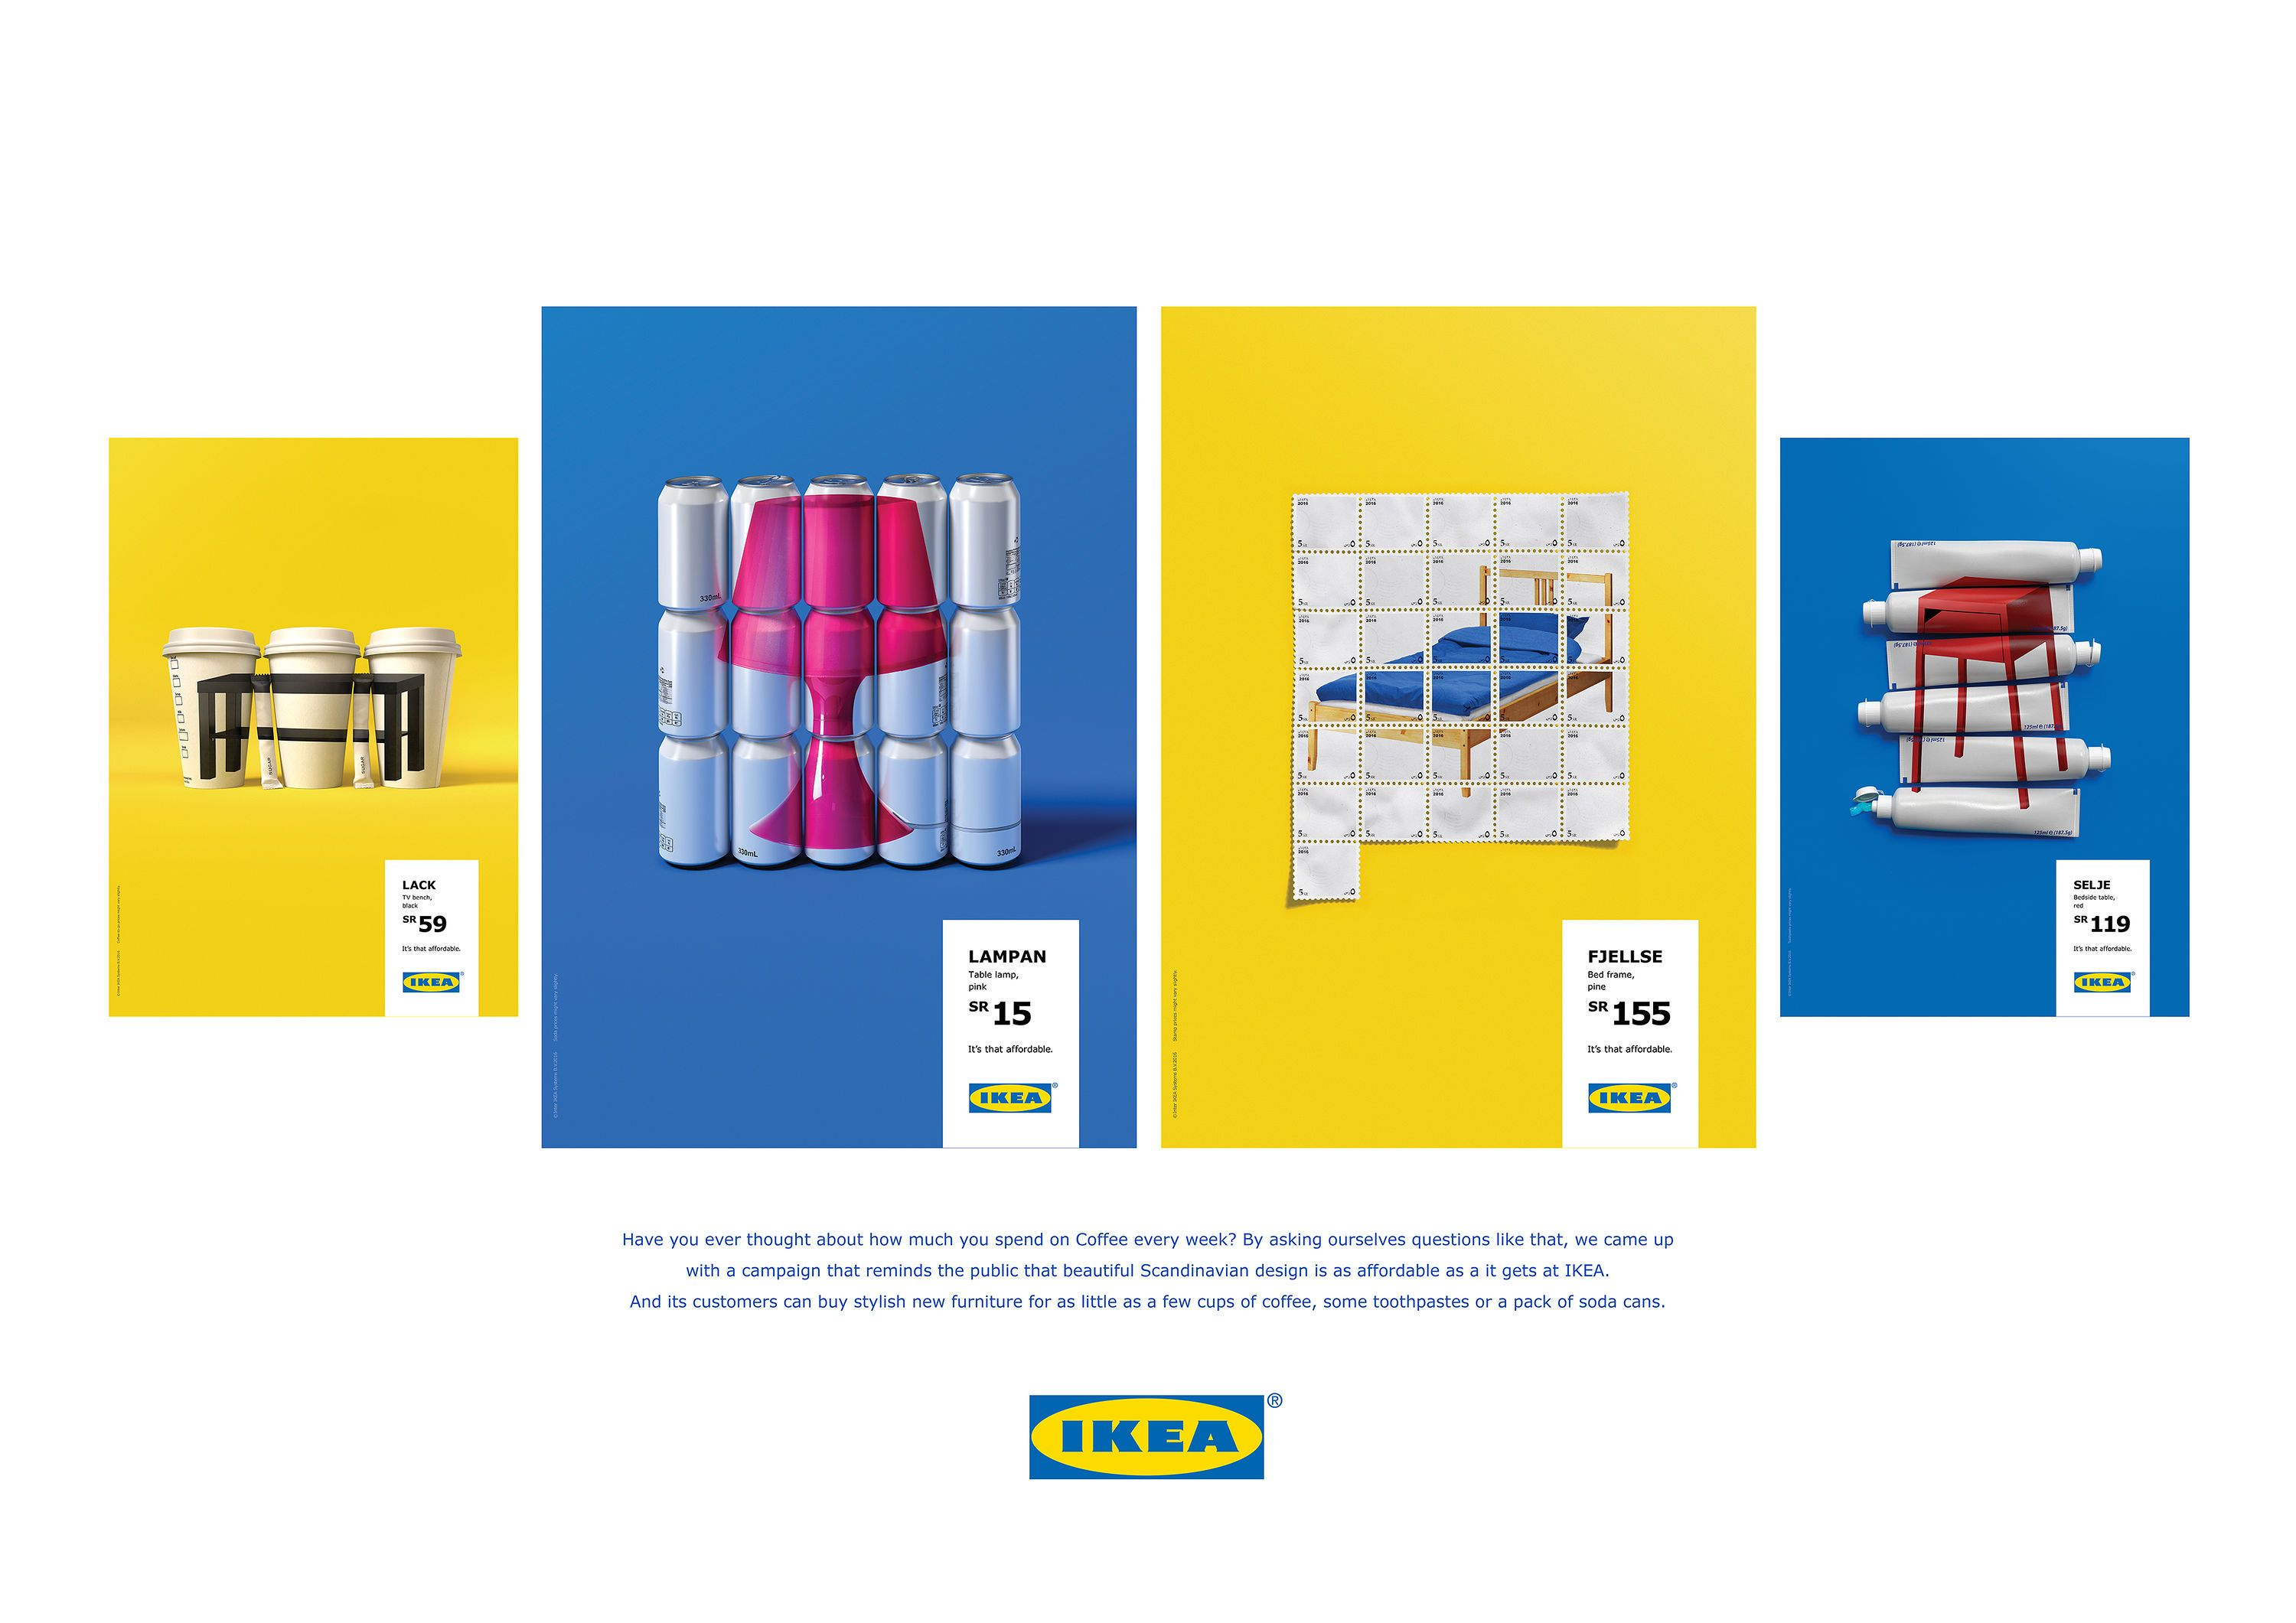 Ikea Poster Ikea It S That Affordable Ikea Furniture Colourful Poster